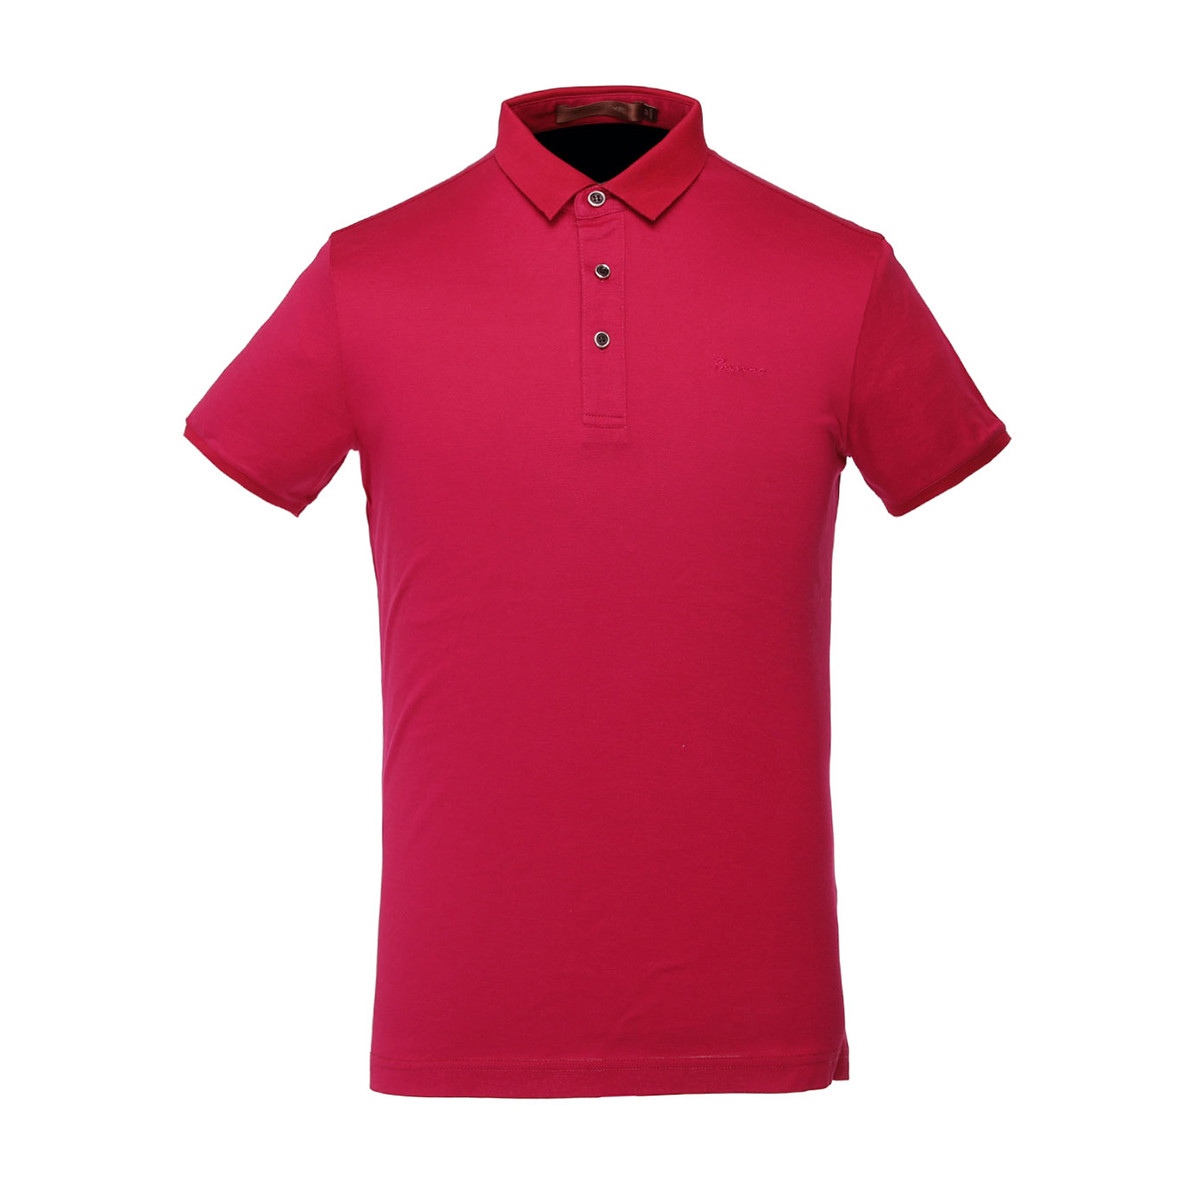 Red color man  Polo shirt soft cotton plain tshirts polo collar tshirt design